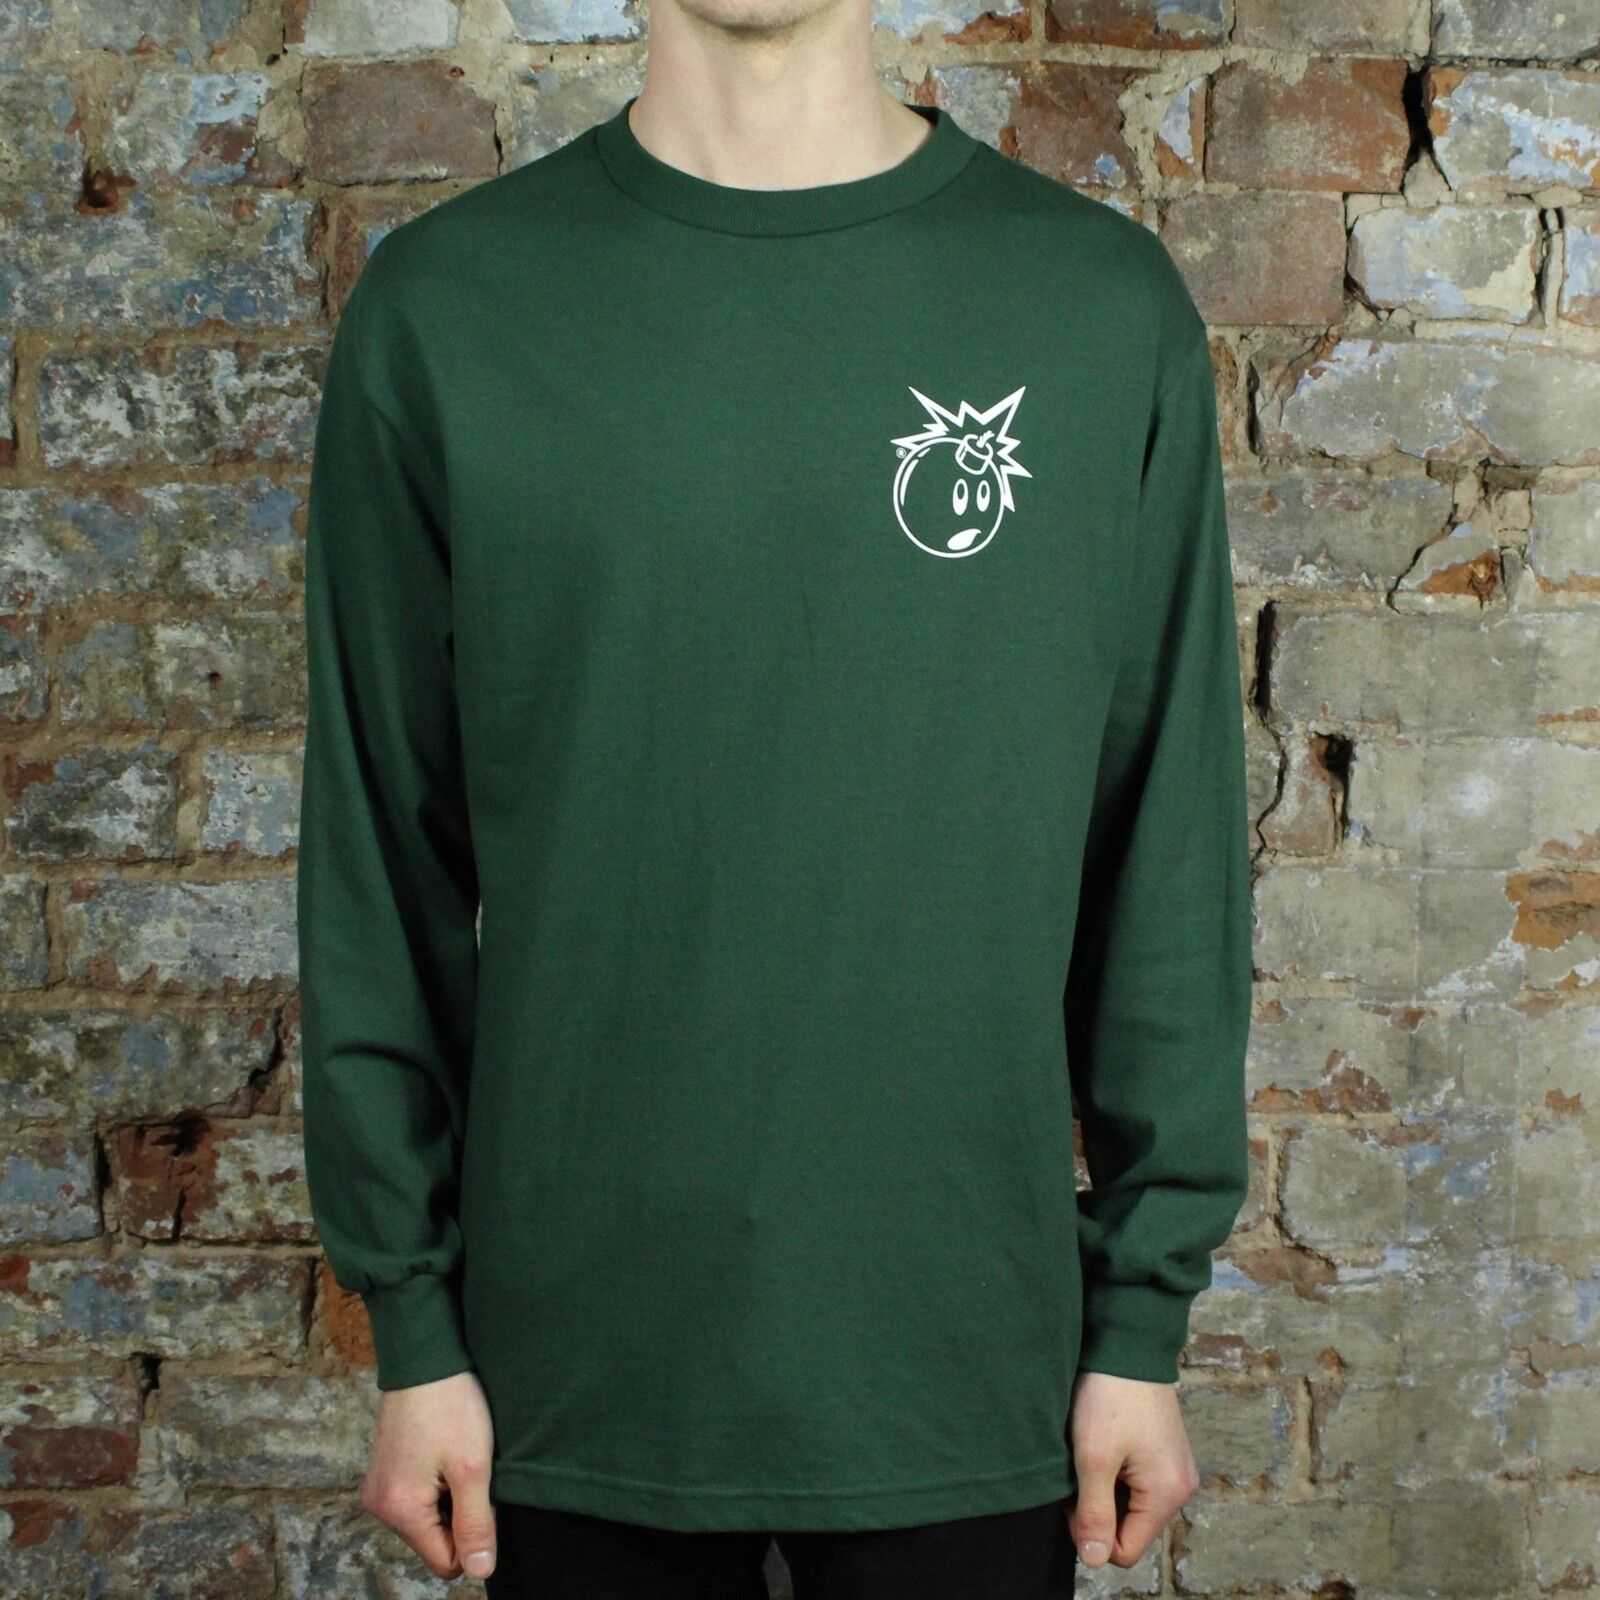 The Hundreds Simple Adam Bomb Long Sleeve T-Shirt New in Forest in Size S,M,L